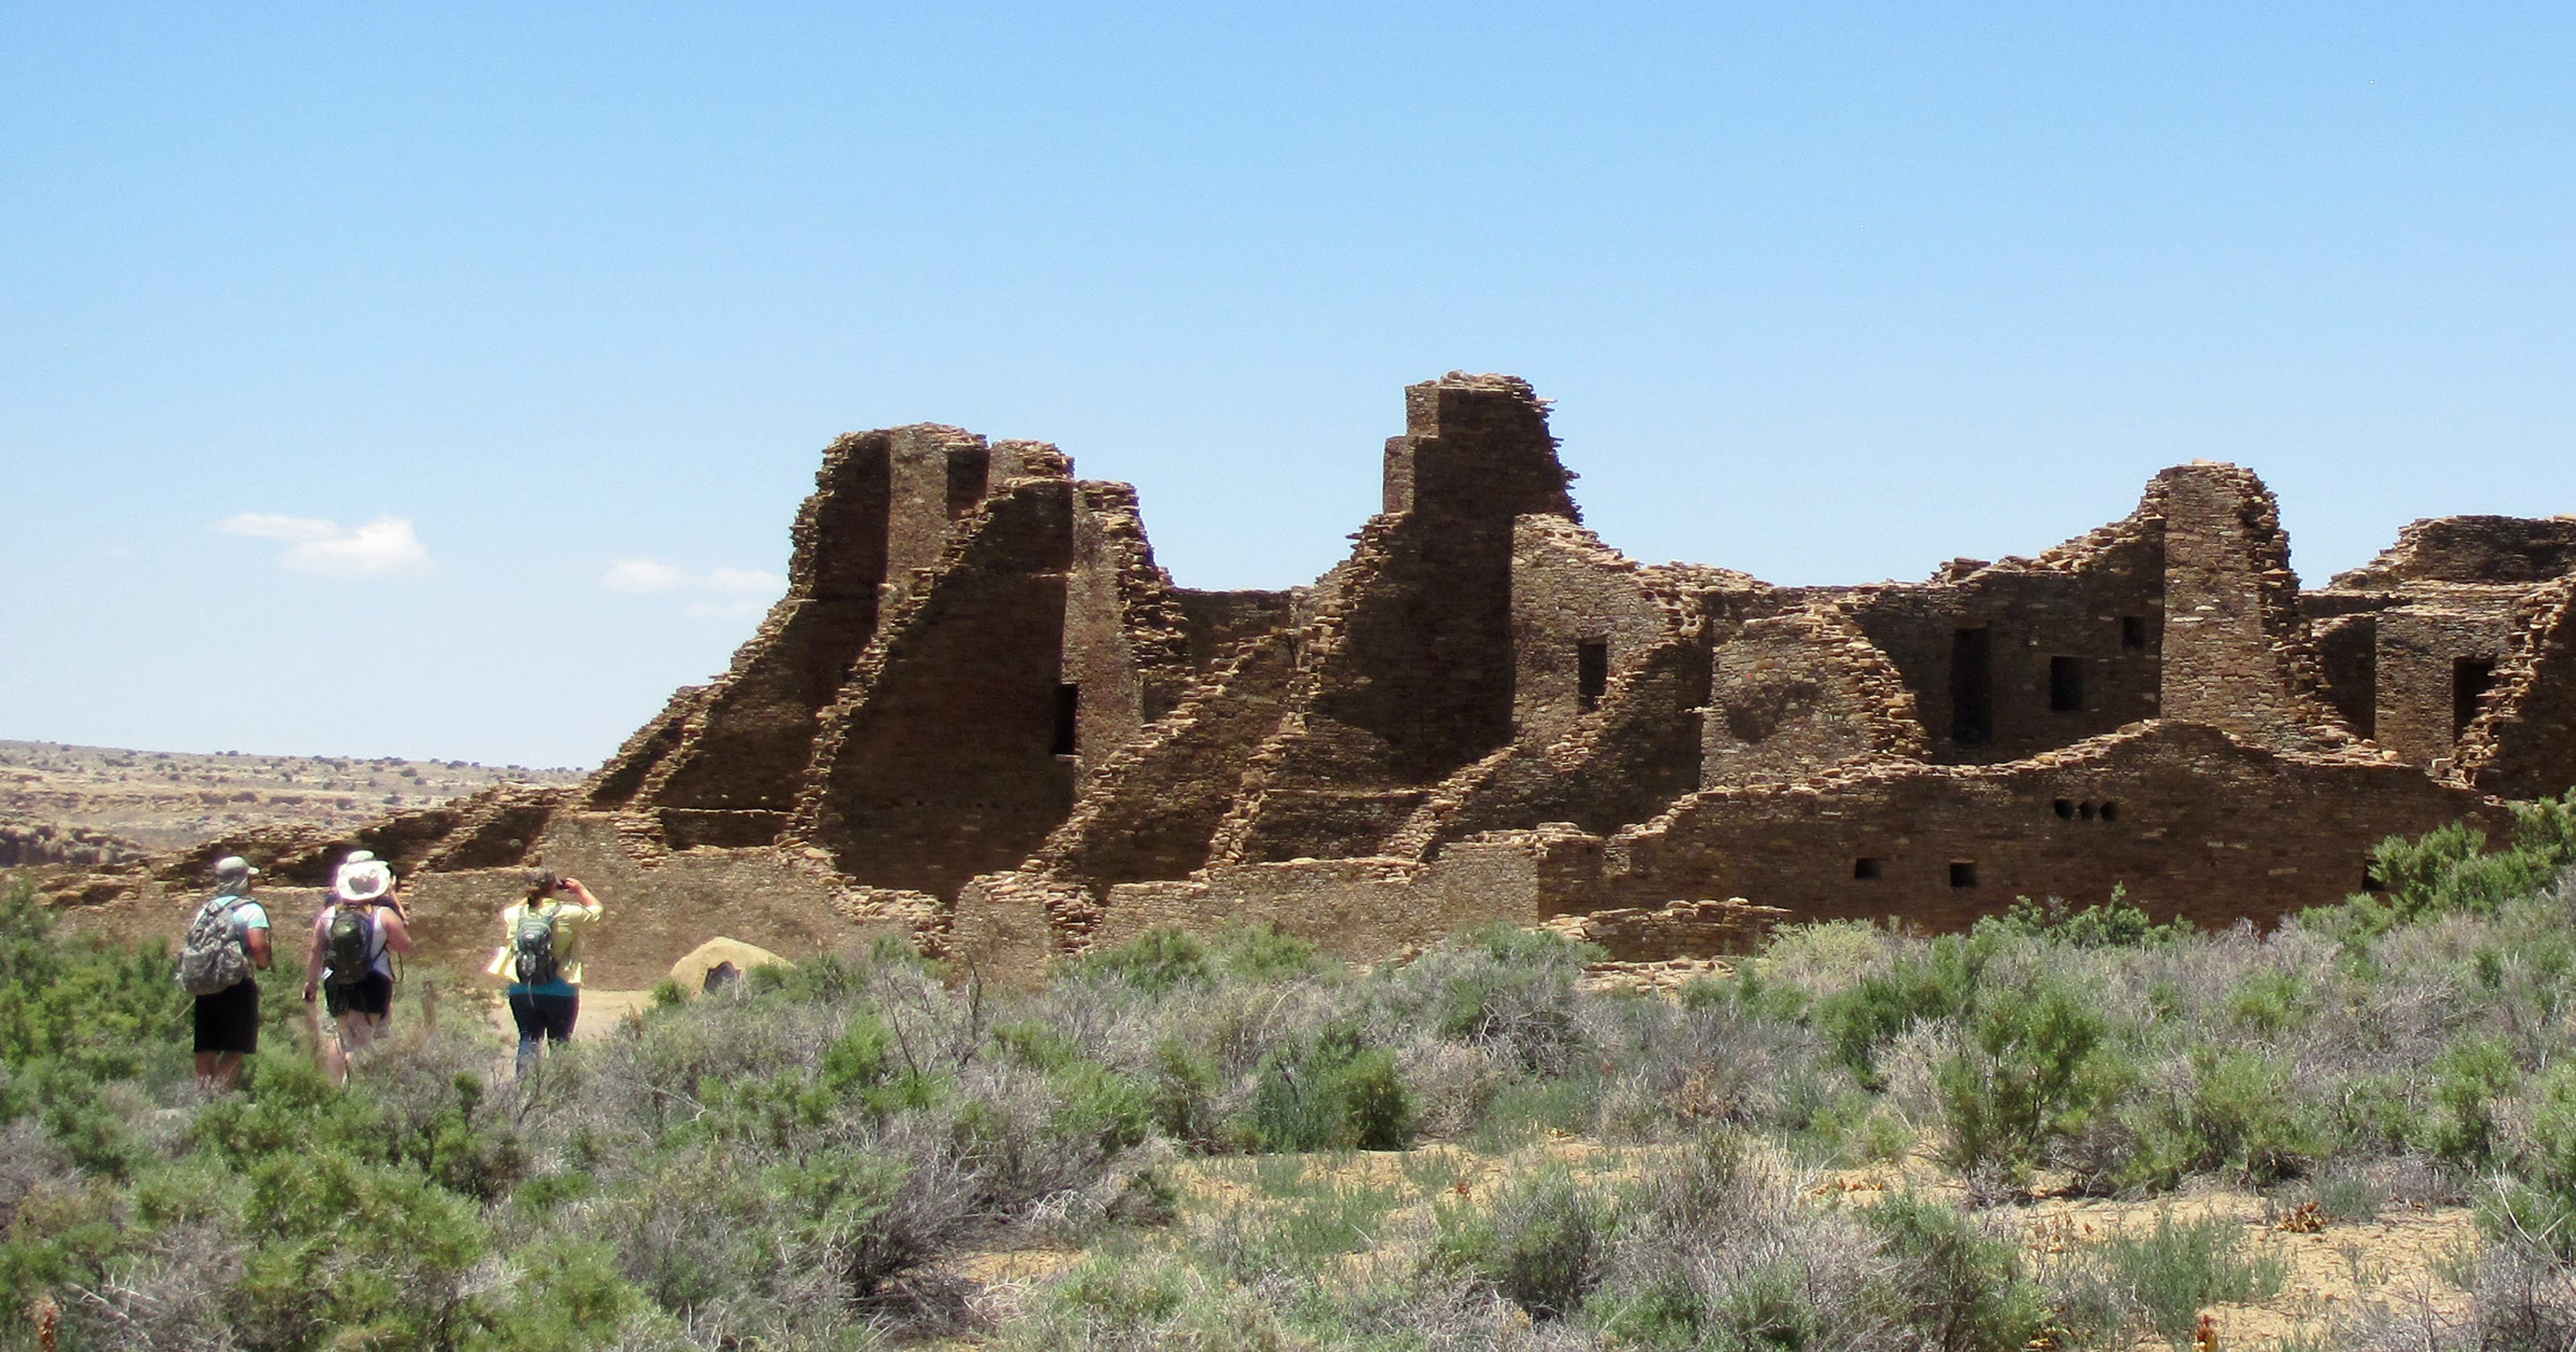 Chaco Culture National Historical Park Visitor Center